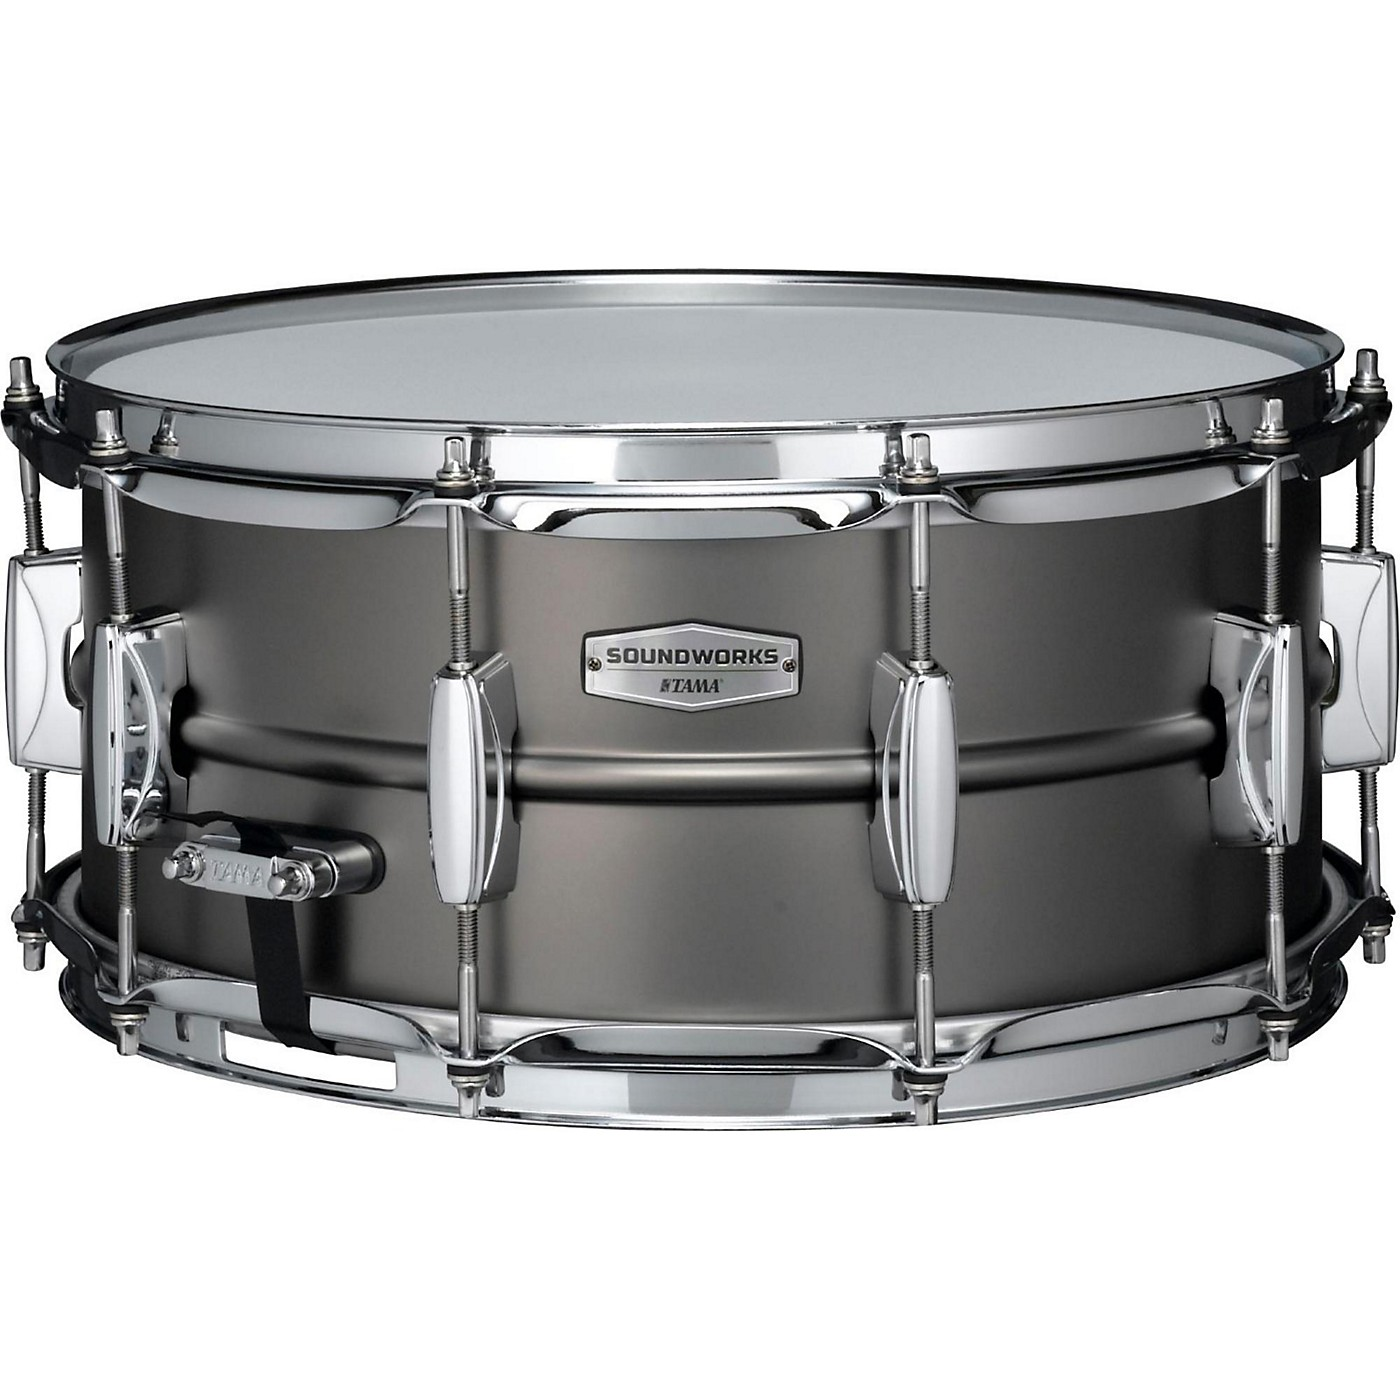 TAMA Soundworks Steel Snare Drum thumbnail